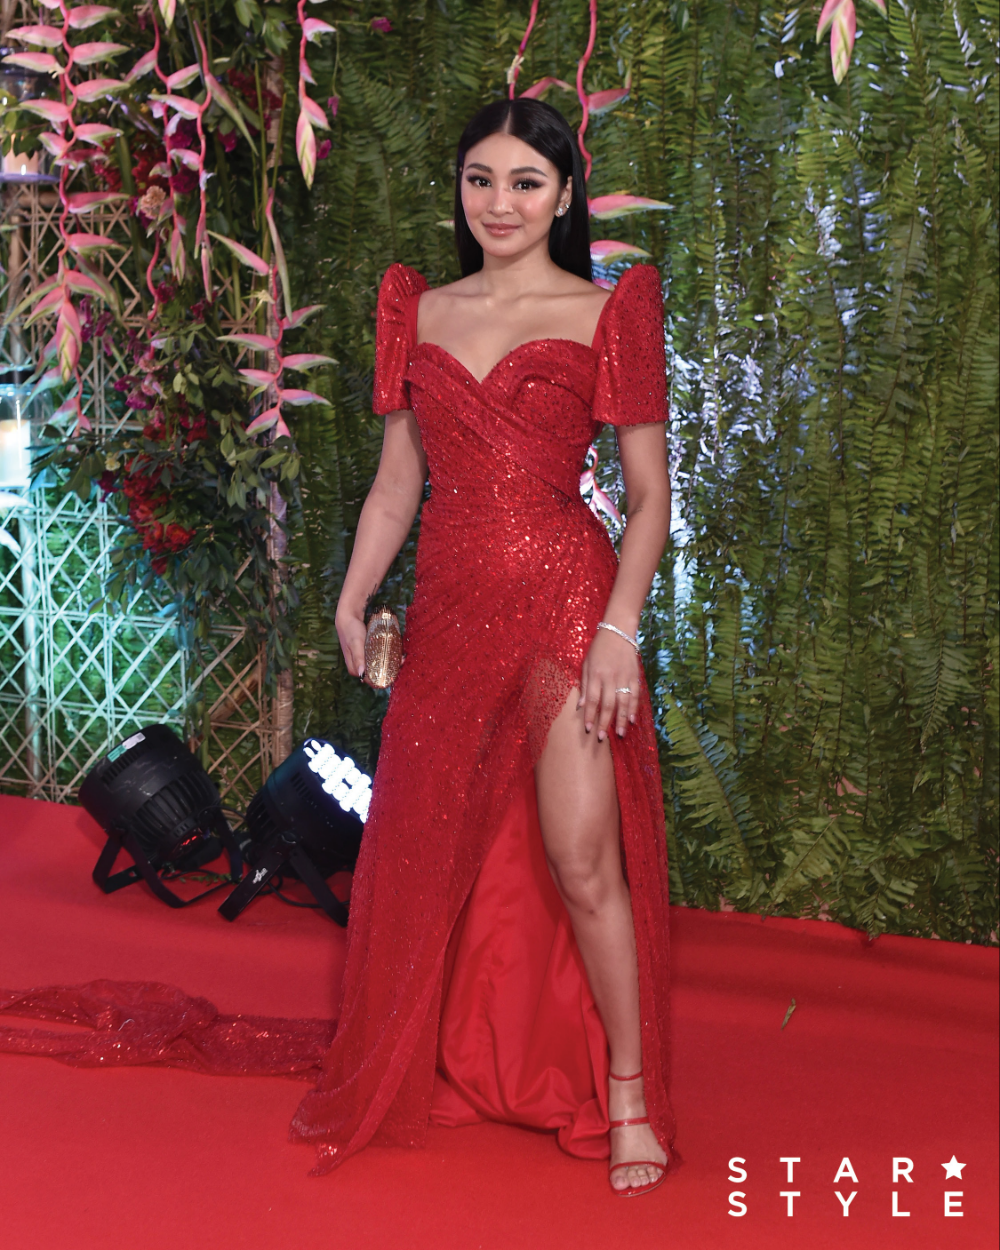 The 15 Best-Dressed Celebrities At The ABS-CBN Ball 2019